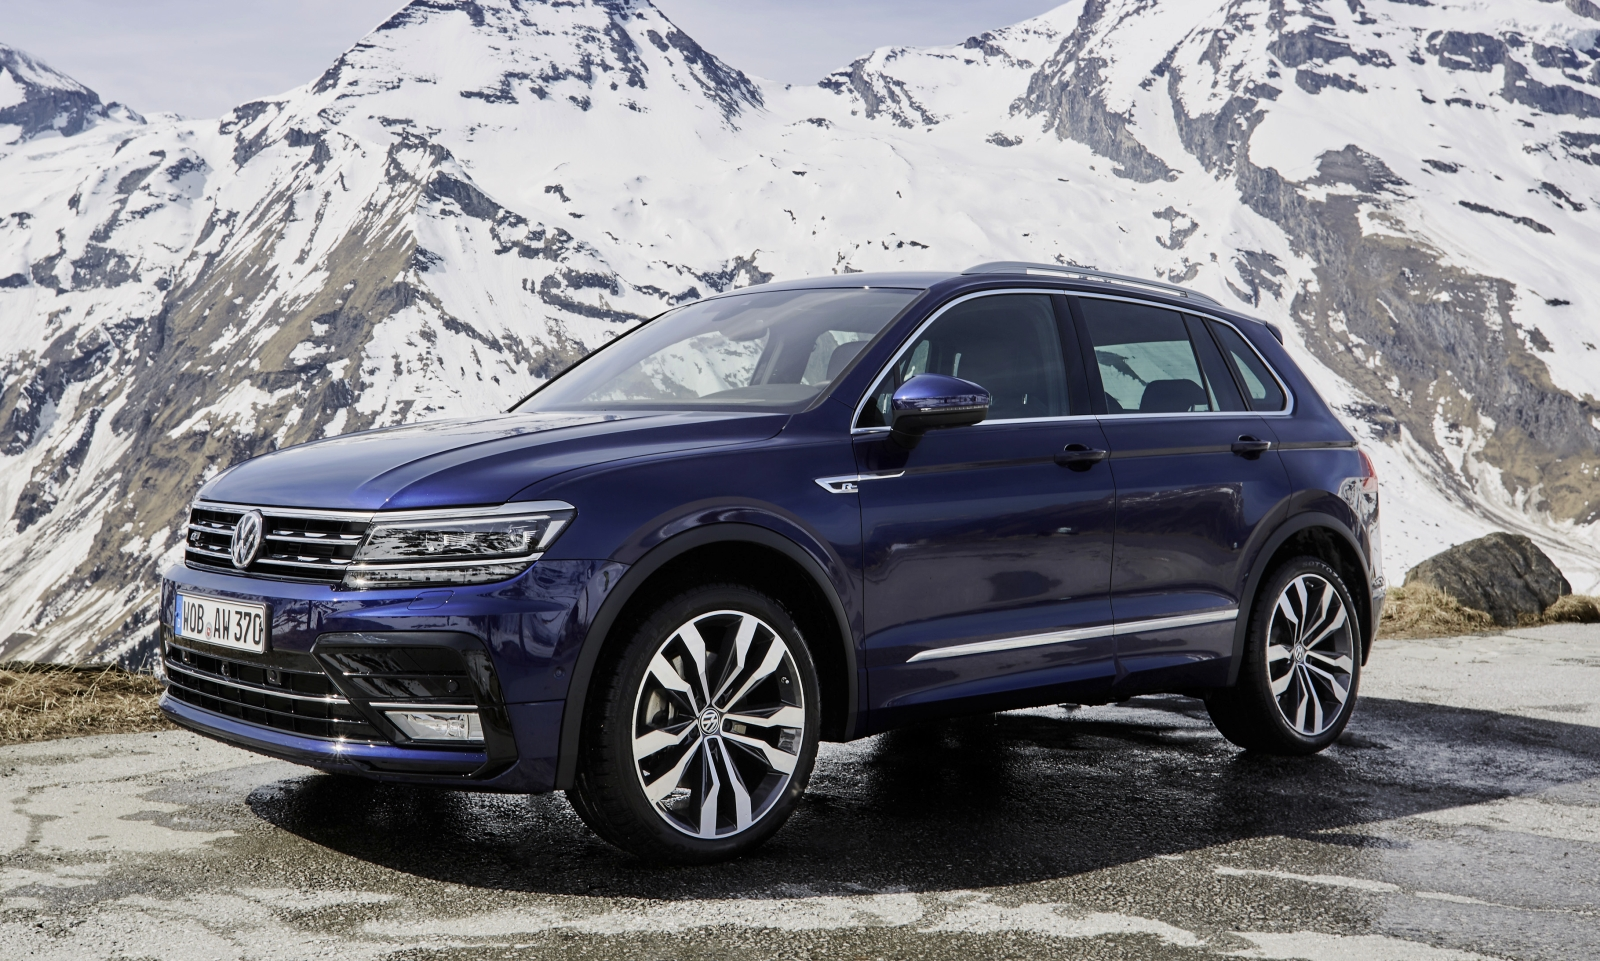 autotest deze volkswagen tiguan of toch een porsche macan. Black Bedroom Furniture Sets. Home Design Ideas